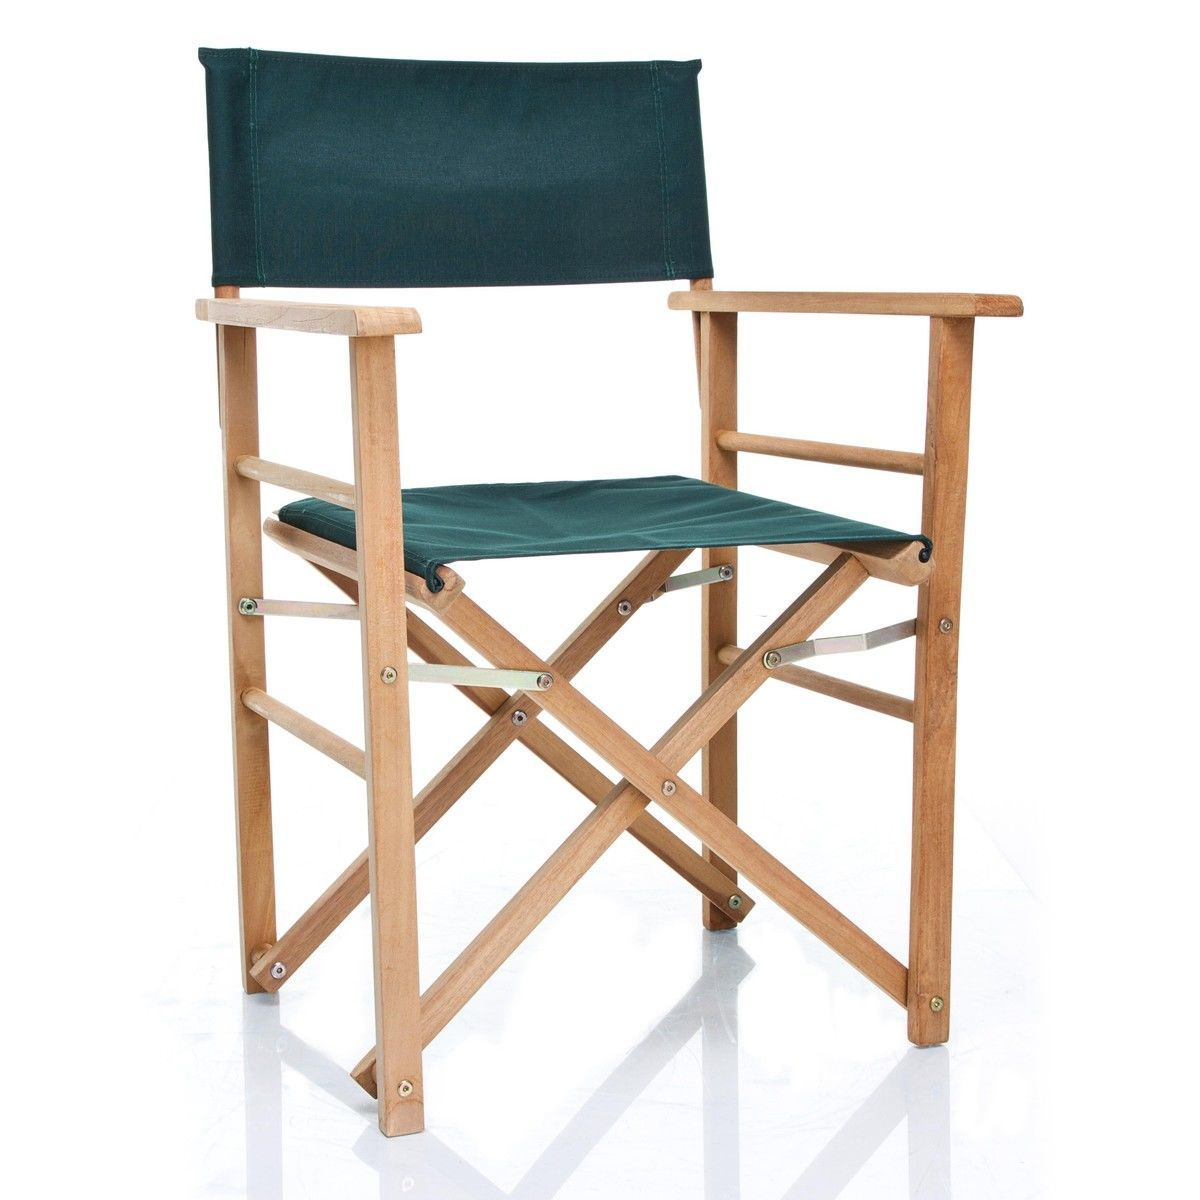 director chair covers grey target outdoor folding lawn chairs jan kurtz 39s ambientedirect